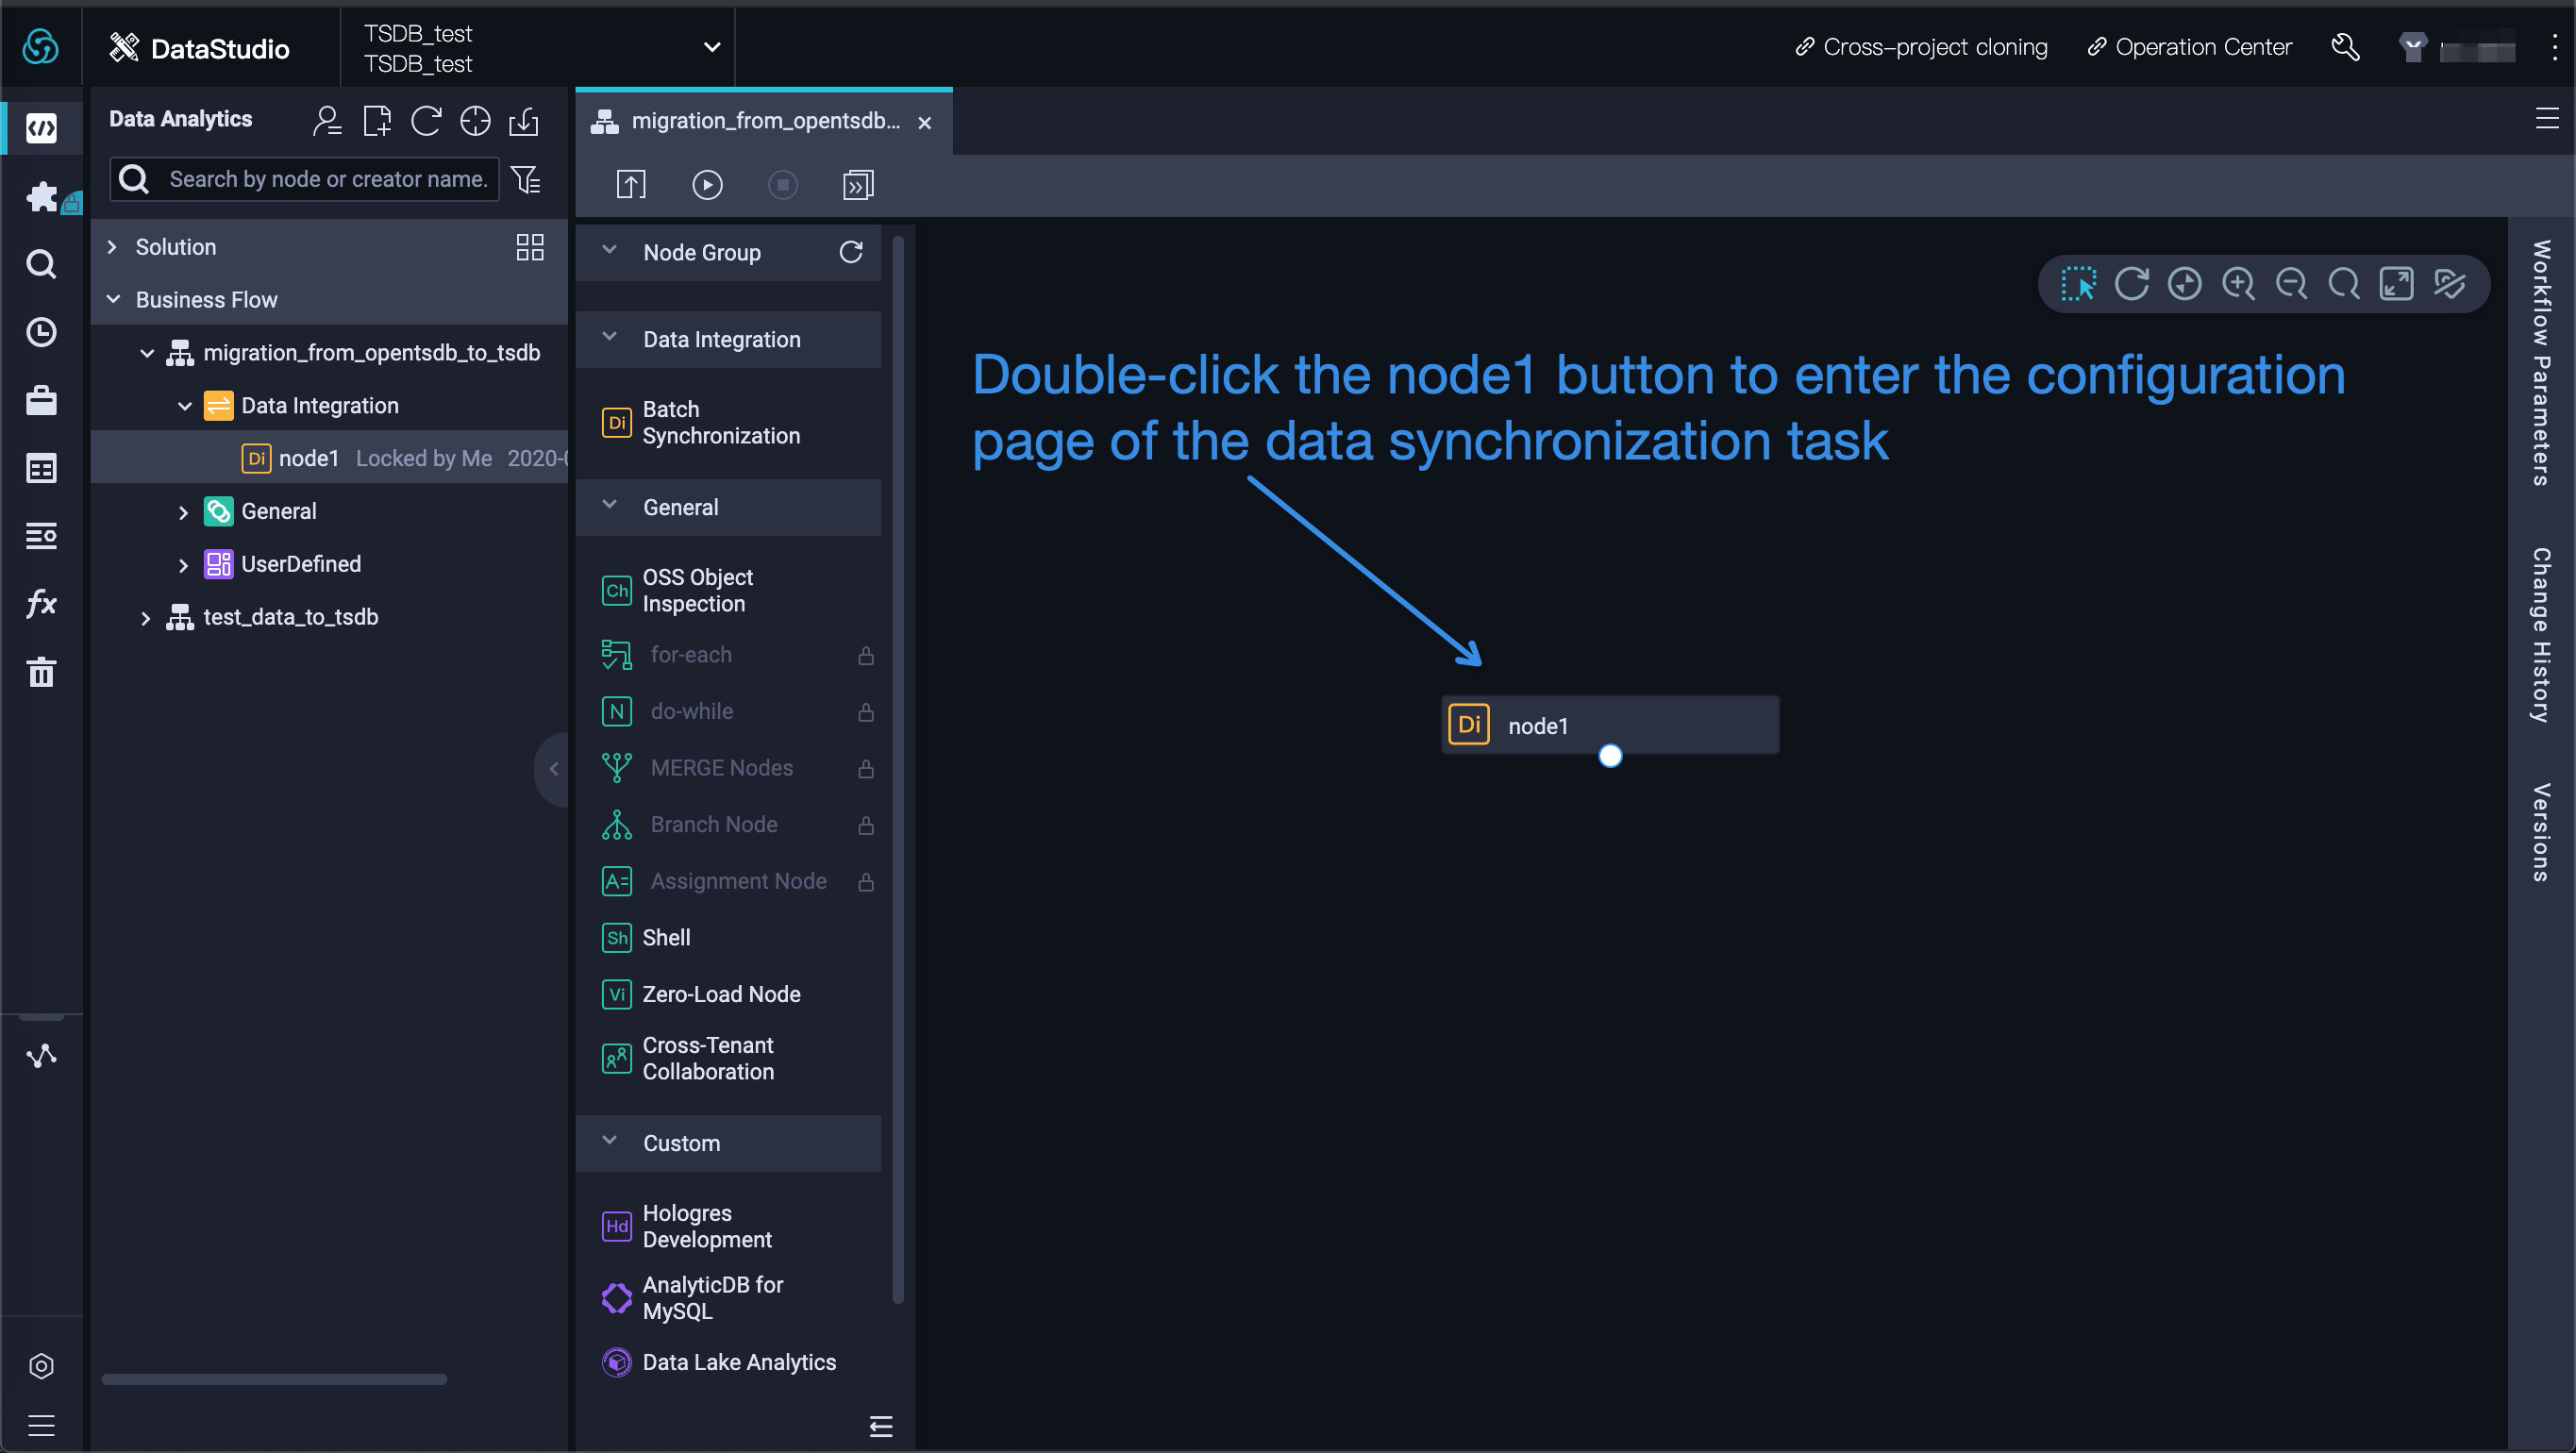 Configure the sync node in DataWorks